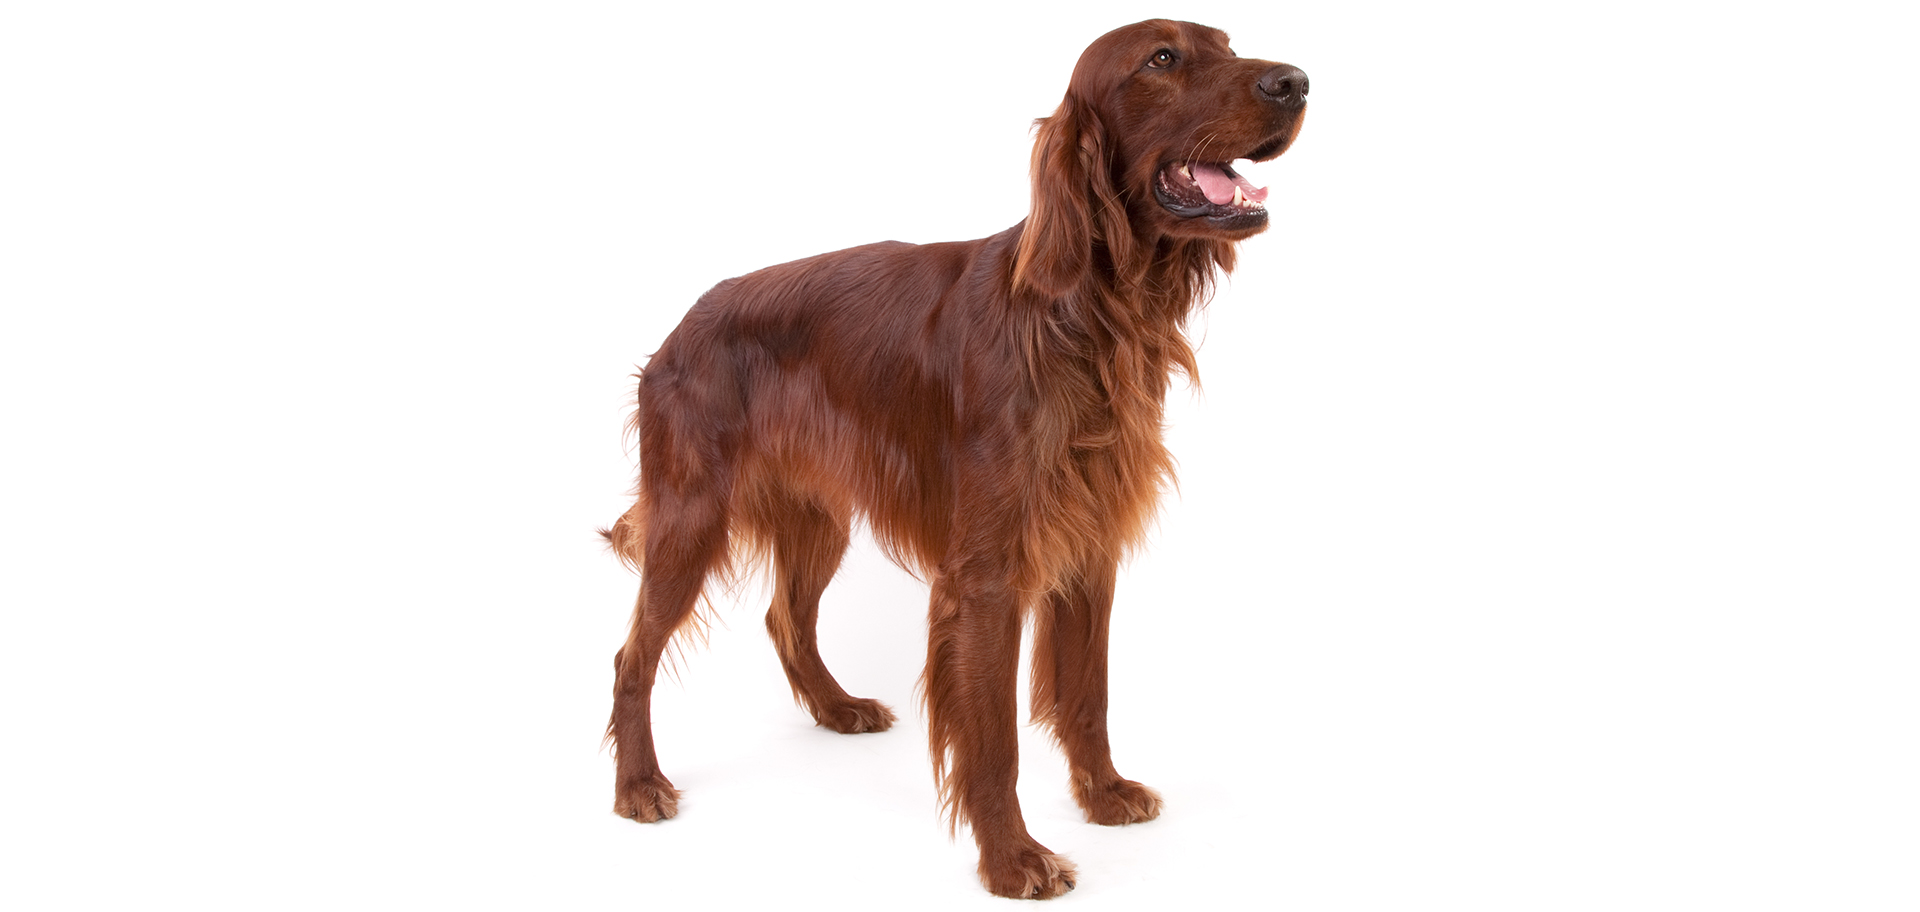 Breed Irish Setter